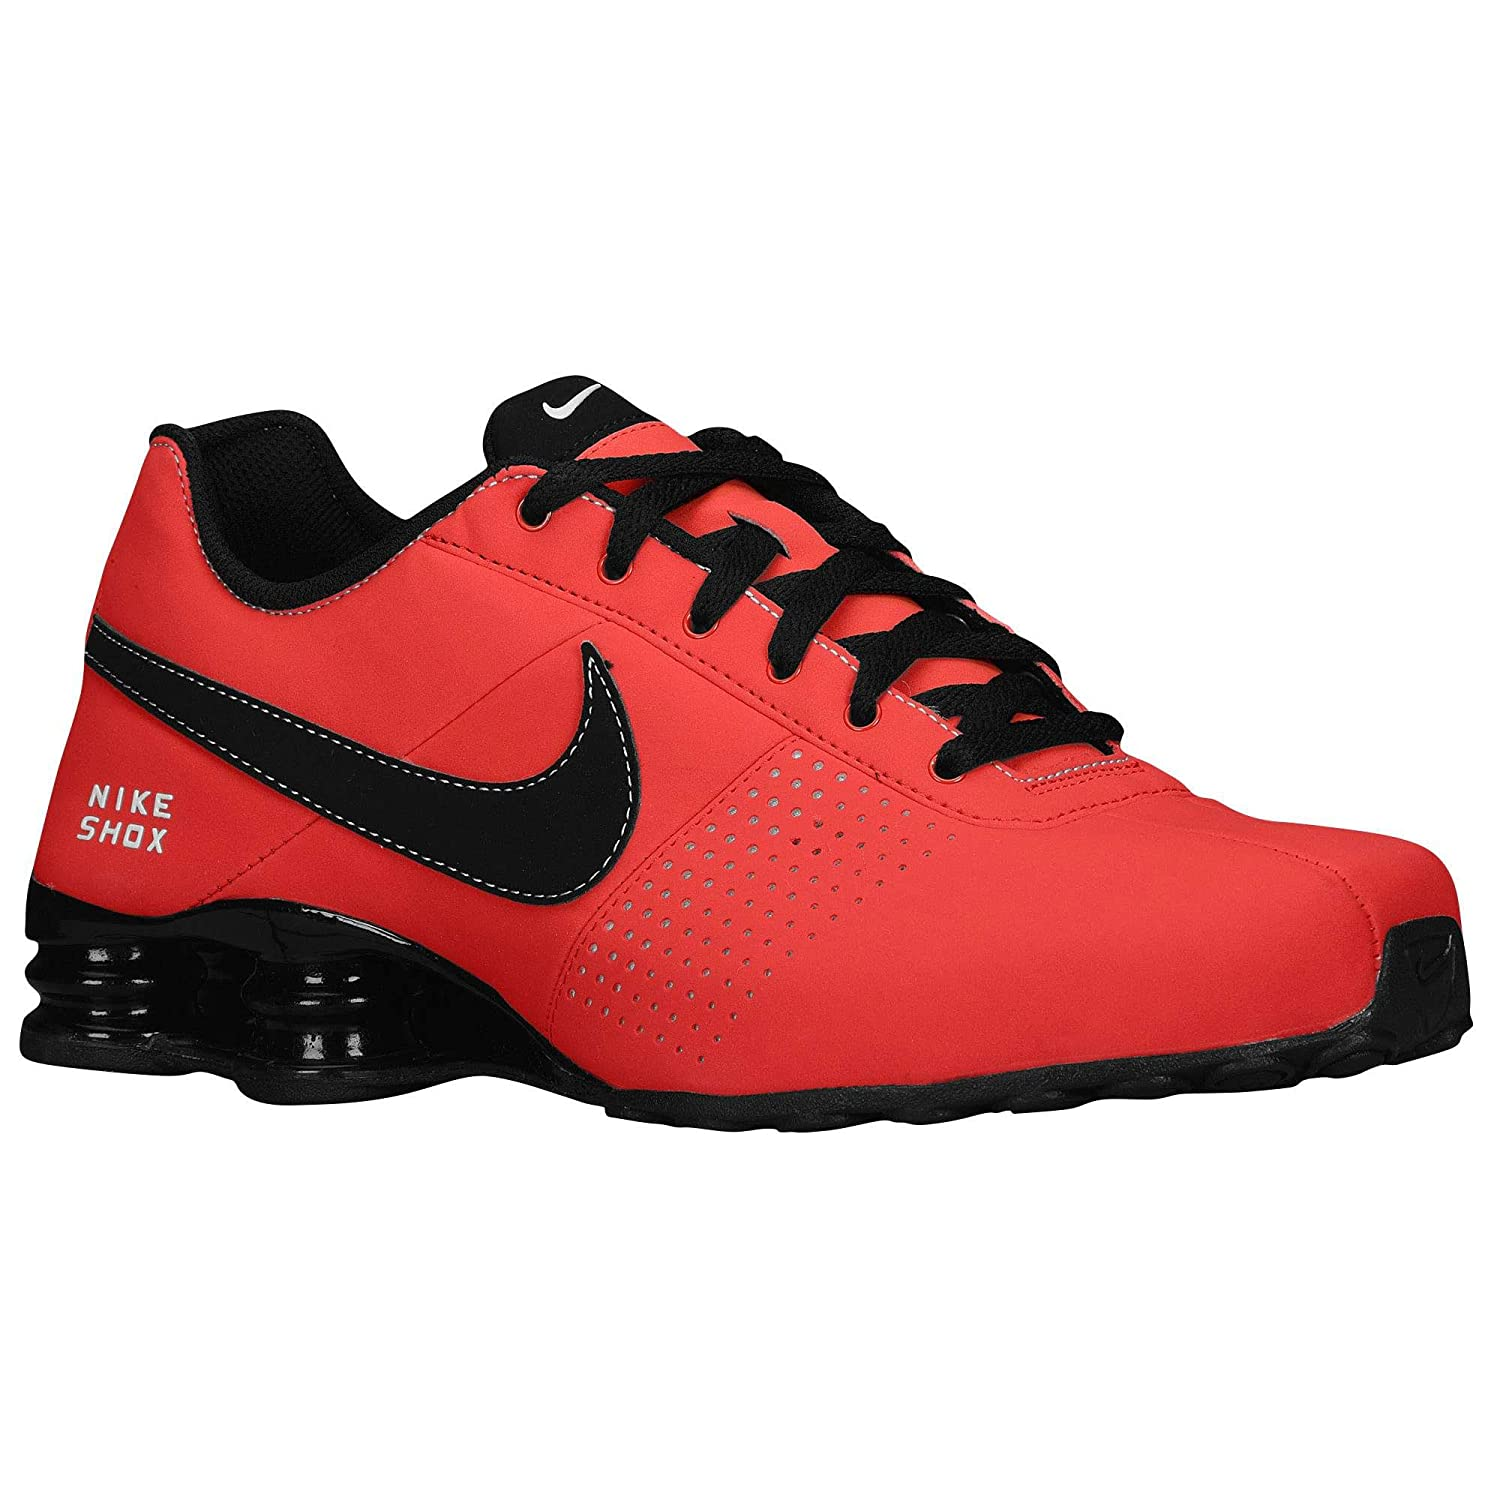 dd3854c73a347d Amazon.com  Nike Shox Deliver  Everything Else